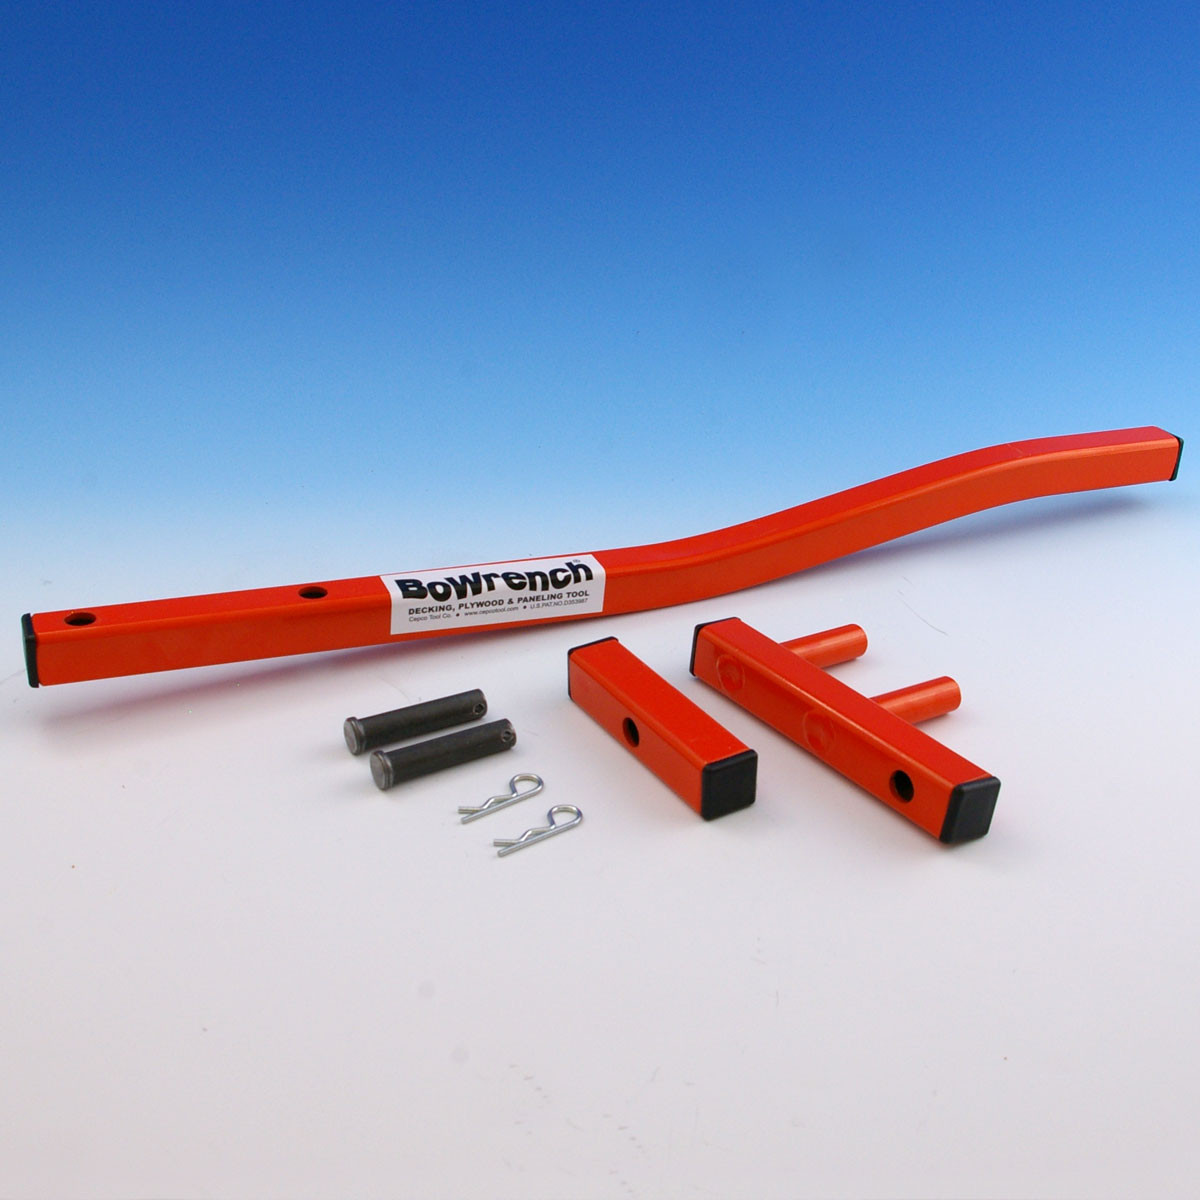 Bowrench deck tool and accessories decksdirect